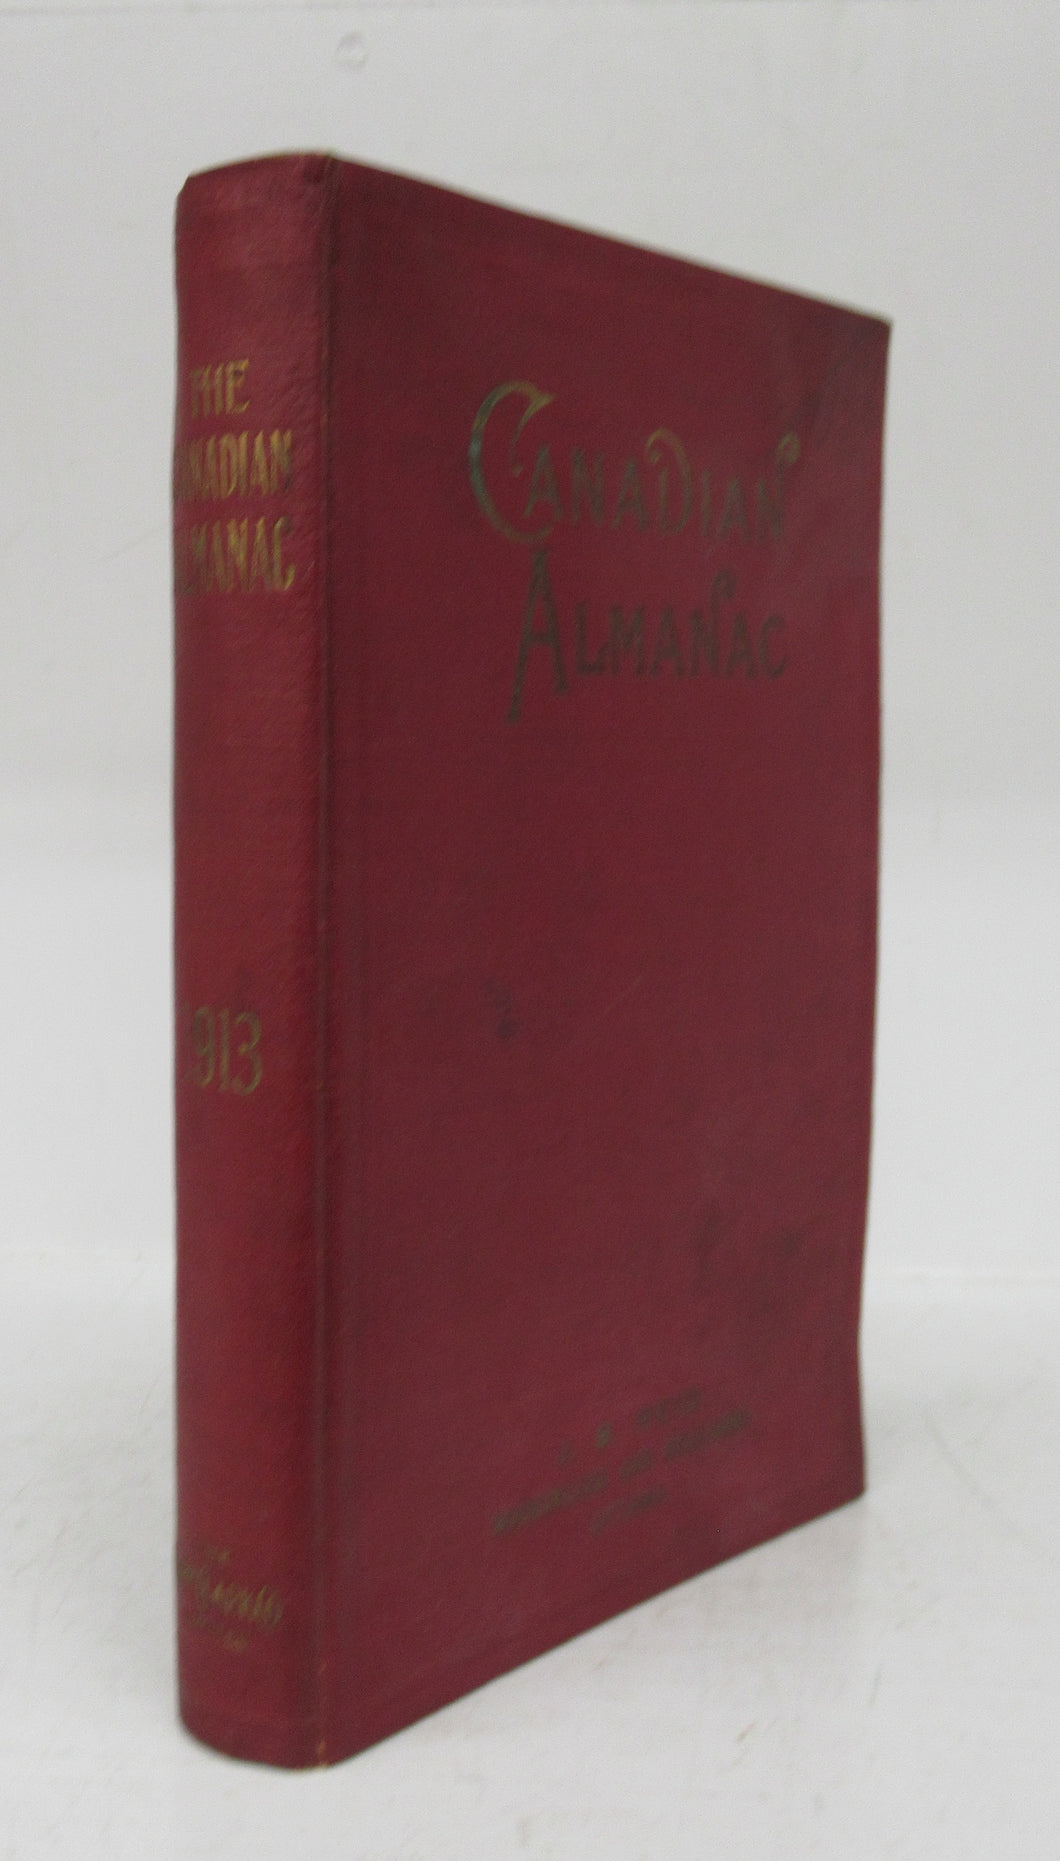 The Canadian Almanac and Miscellaneous Directory for the year 1913